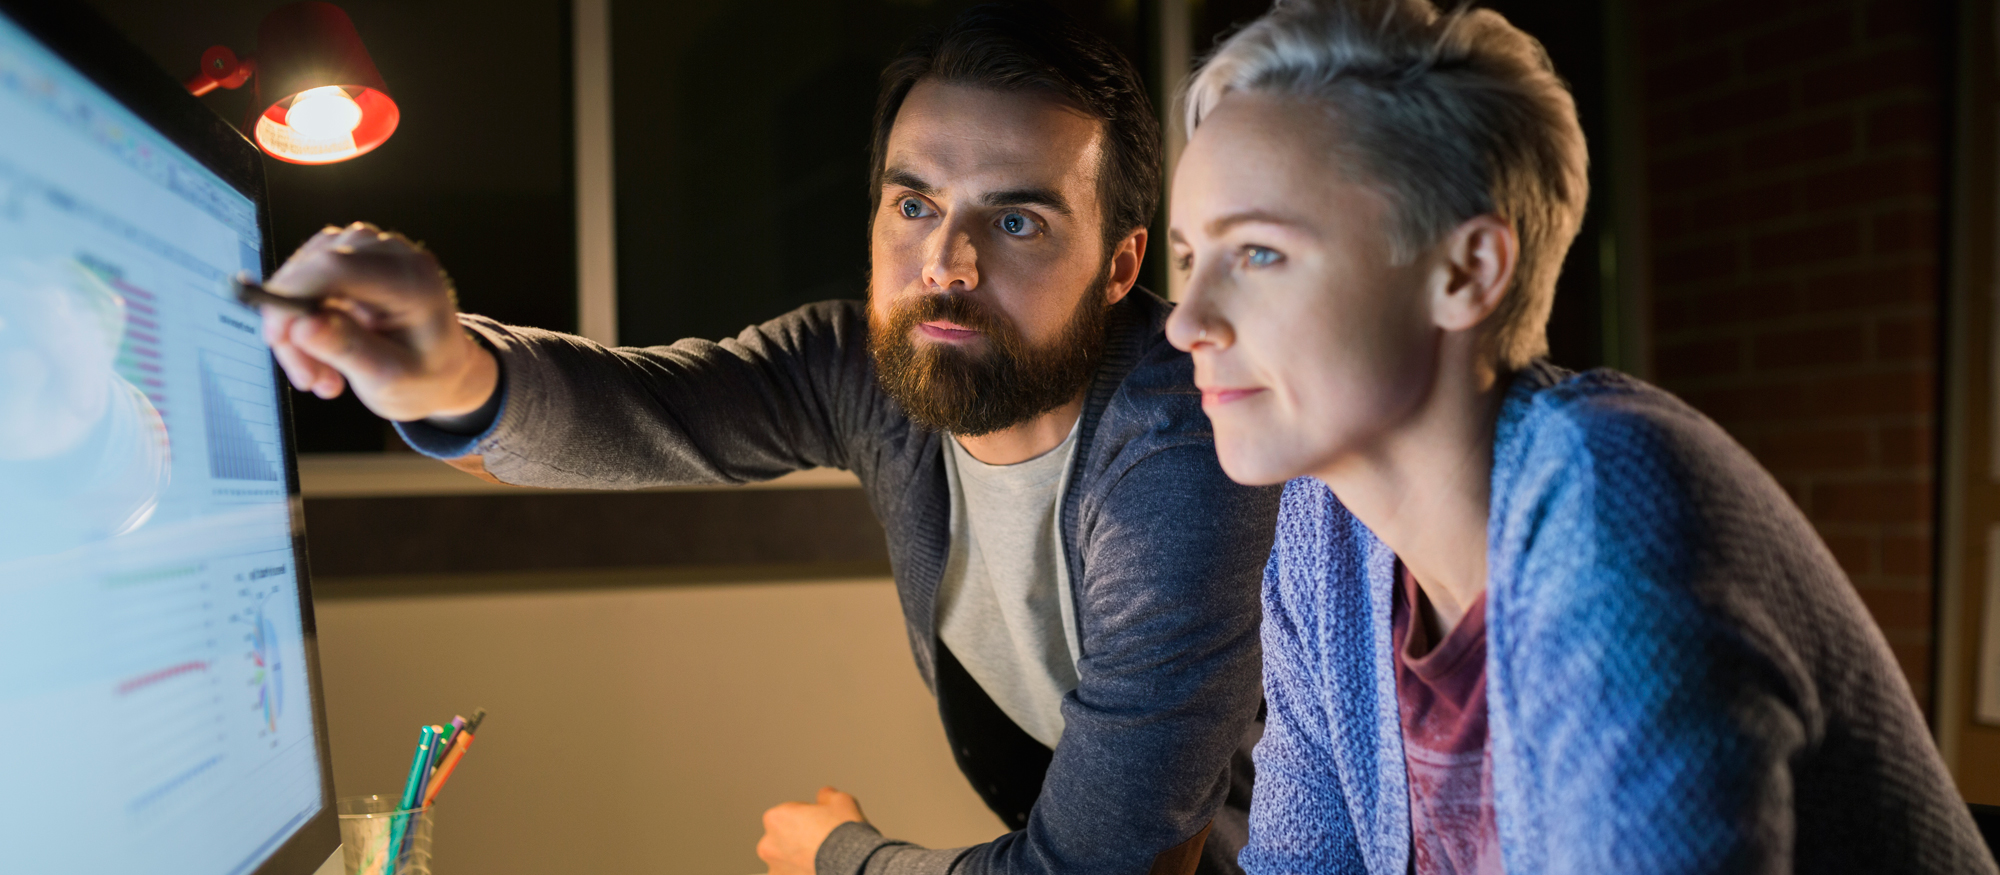 Woman and man looking at a computer screen.